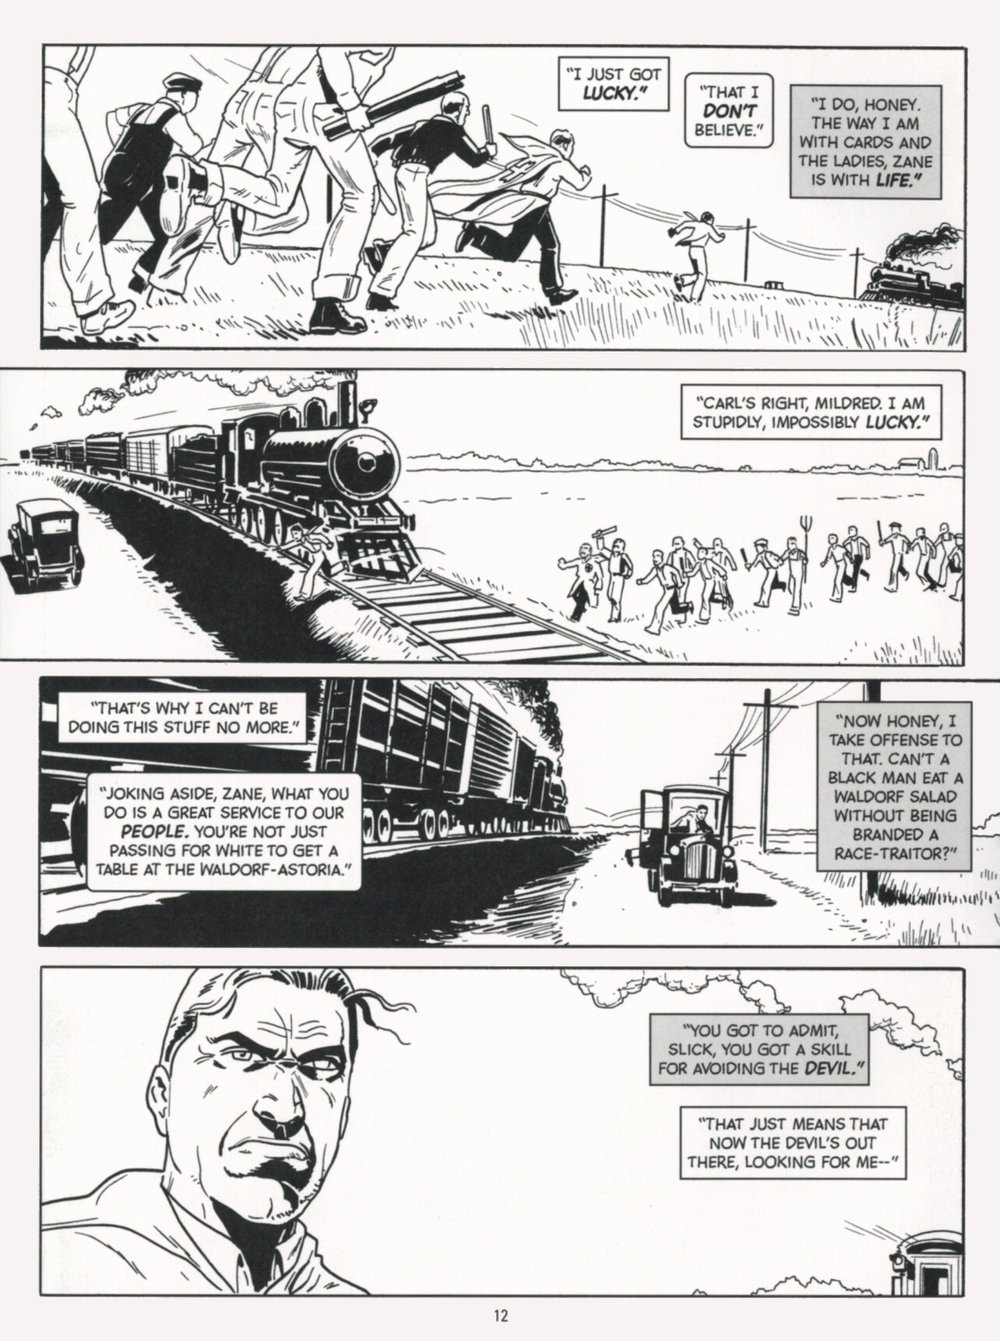 Incognegro (2008) #1 pg.16, lettered by Clem Robins.